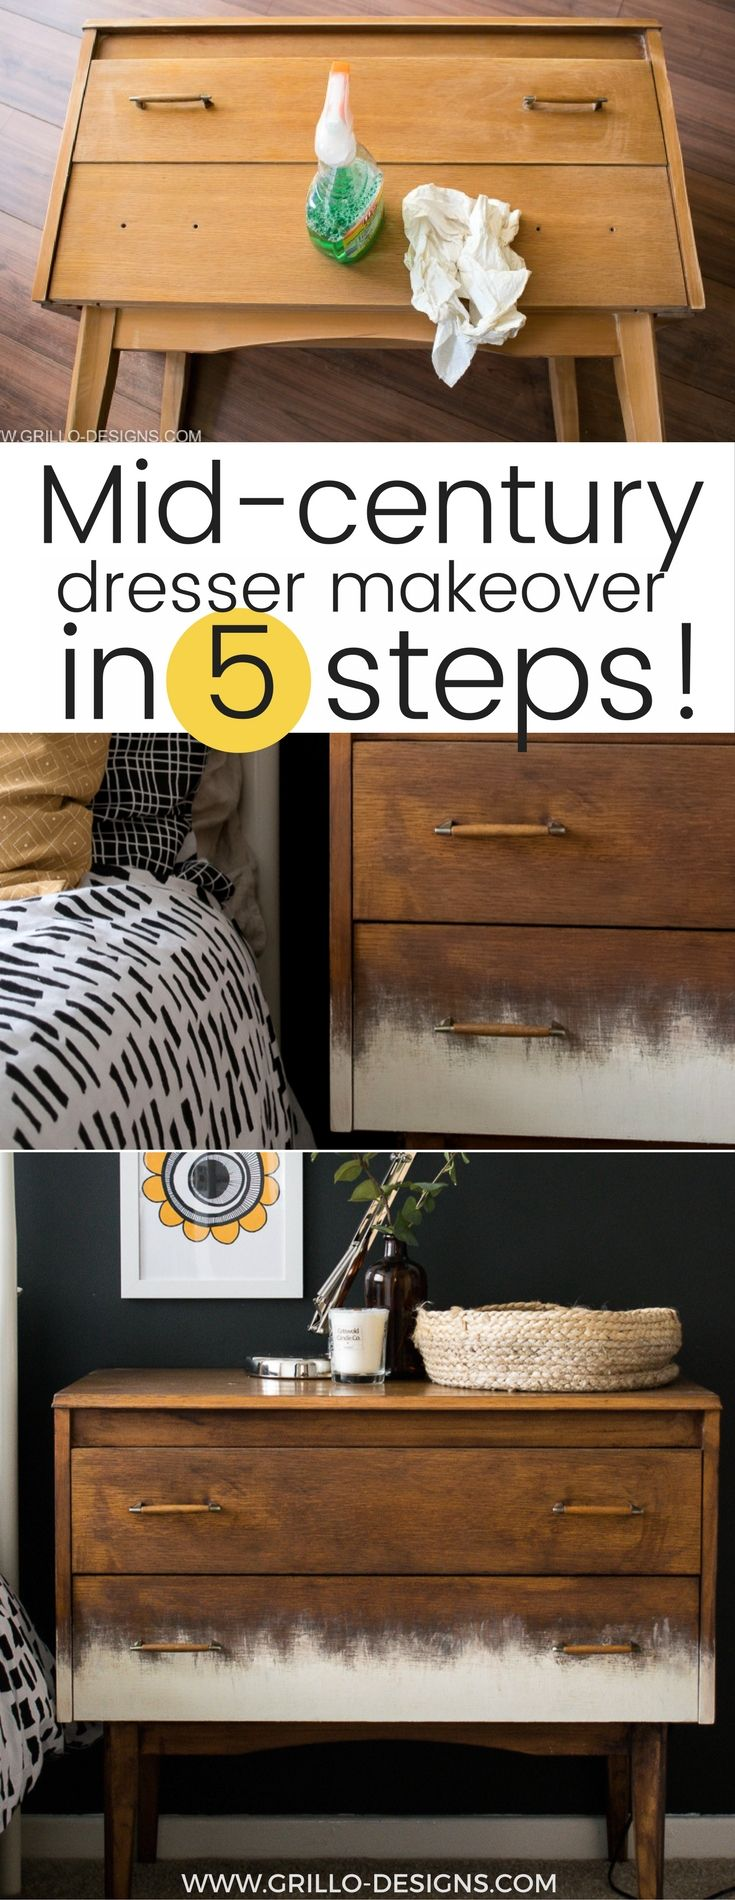 a mid century dresser makeover in 5 easy steps